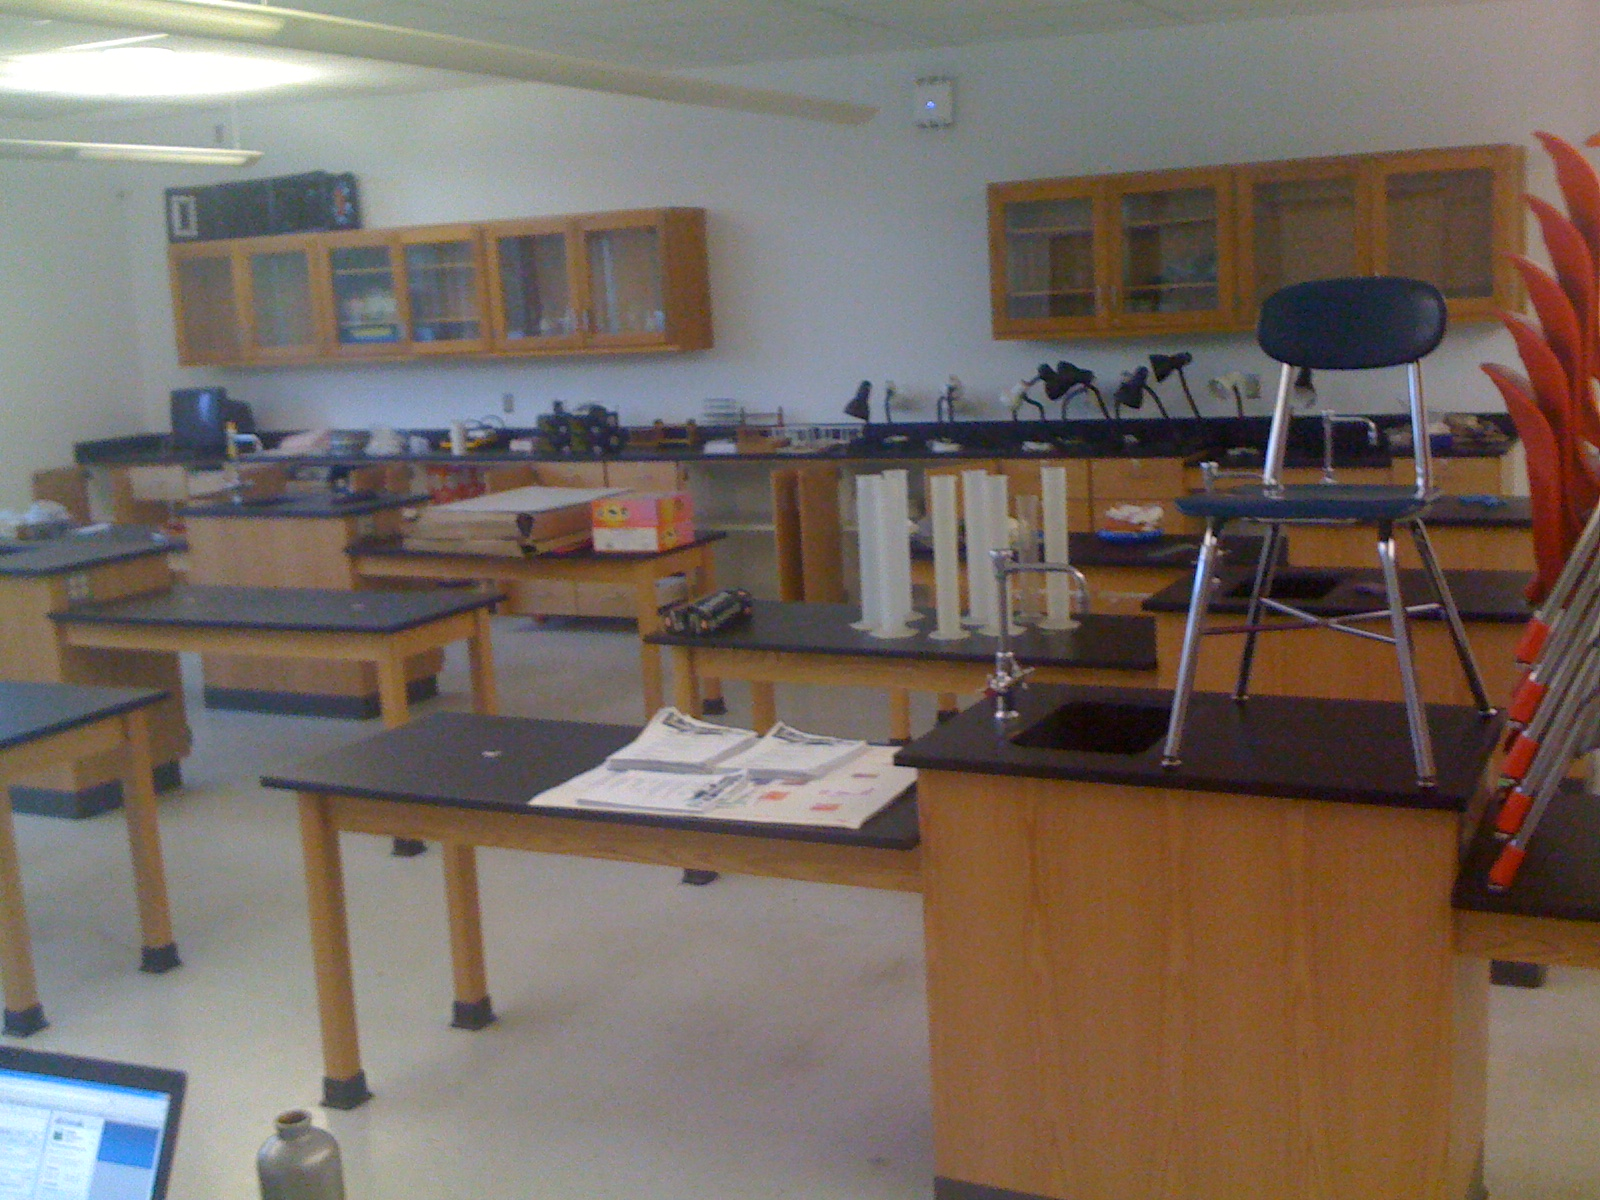 Science classroom. (File Photo/Ben+Sam/Flickr)